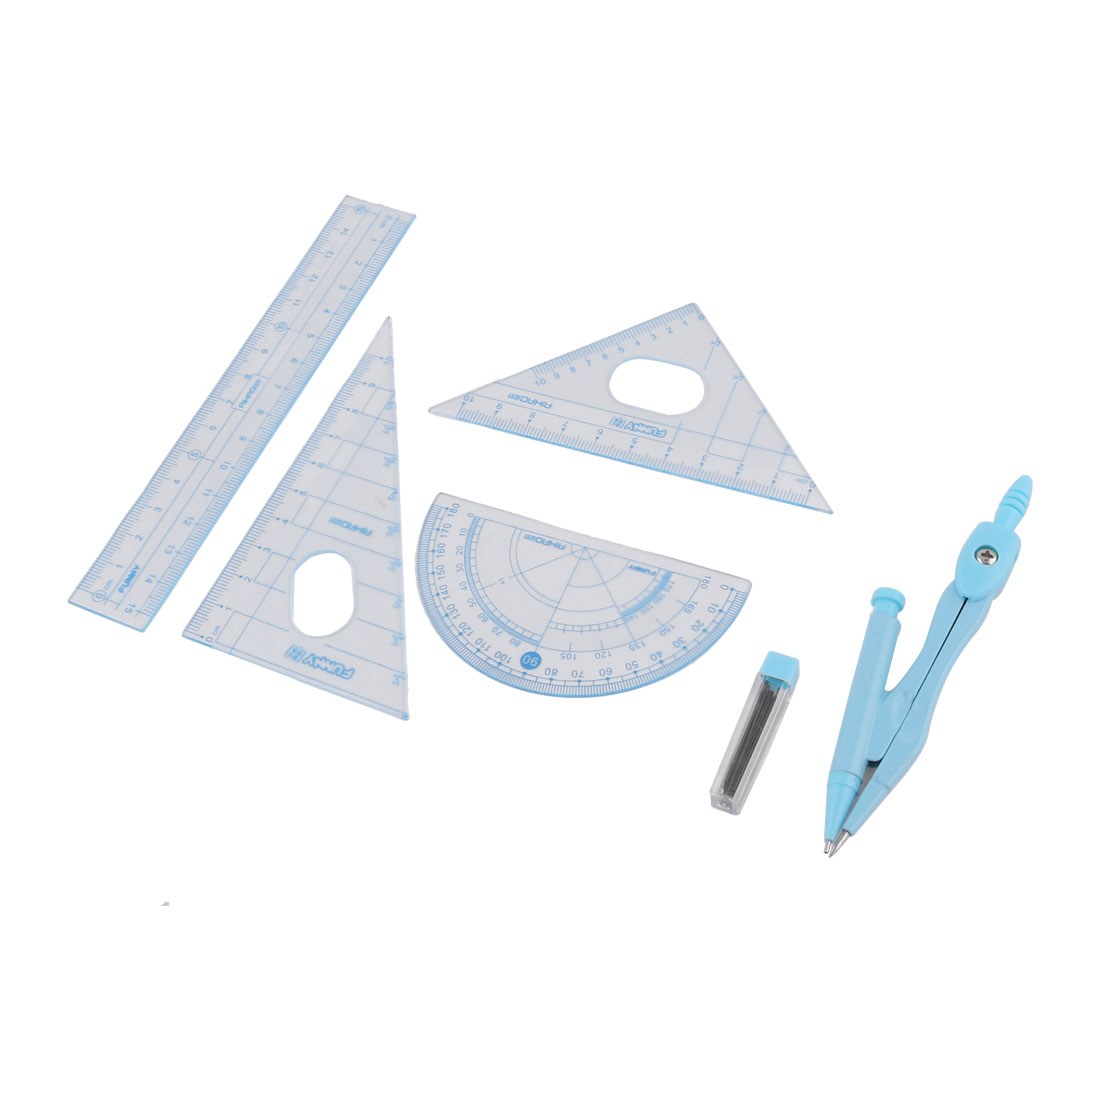 Blue Compass Set Square Protractor 15cm Plastic Ruler